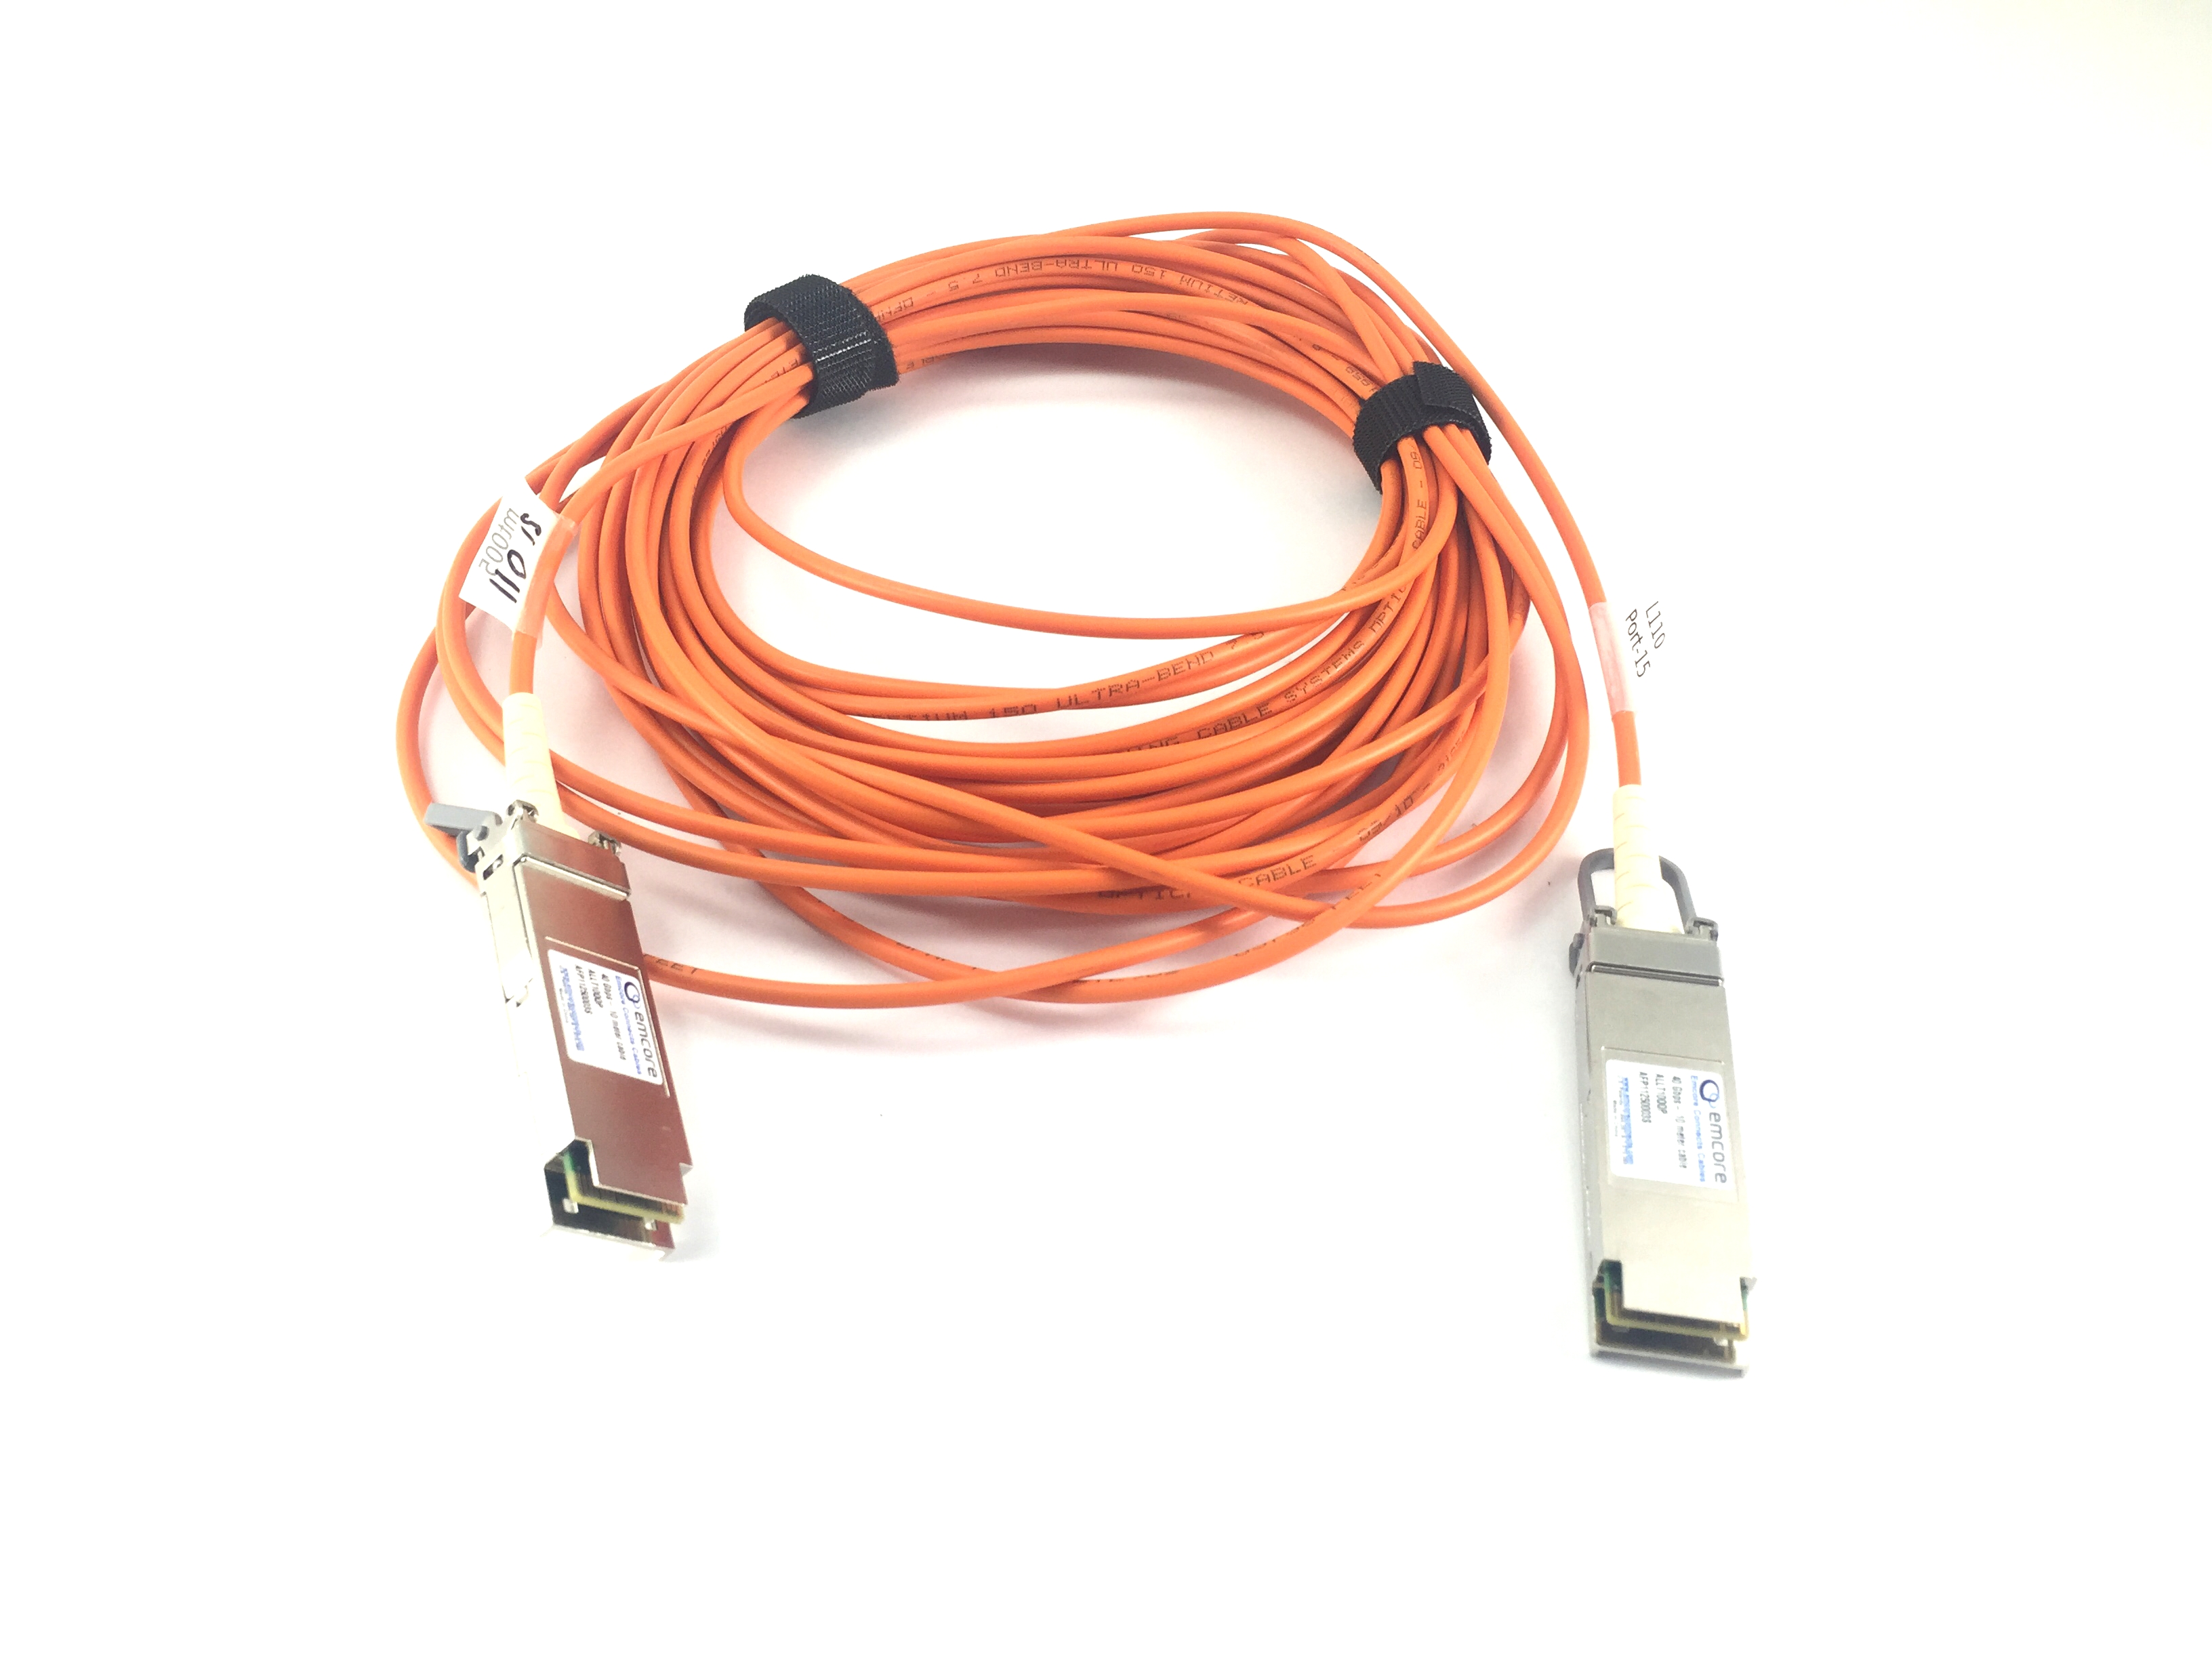 EMCore 40Gbps 10M Long Infiniband Qdr QSFP-QSFP Optical Cable (ALLT10QQP)